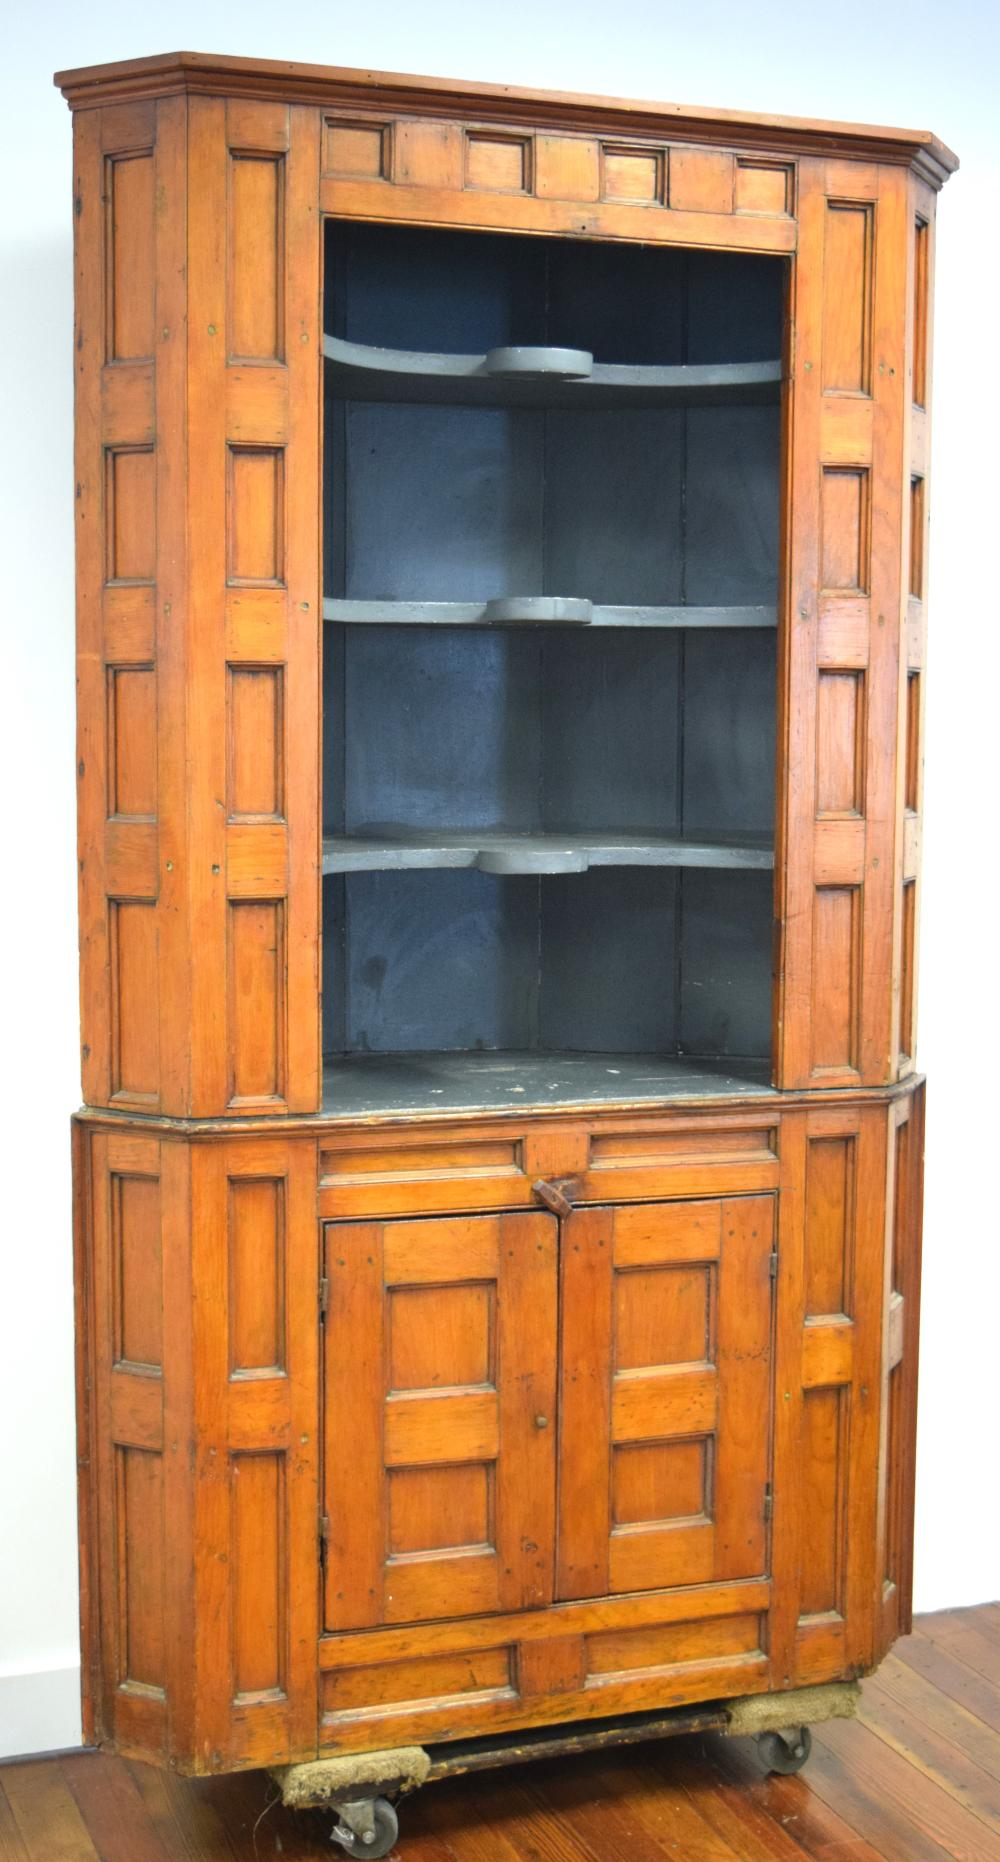 LATE 18TH/EARLY 19TH C PINE OPEN CORNER CUPBOARD: